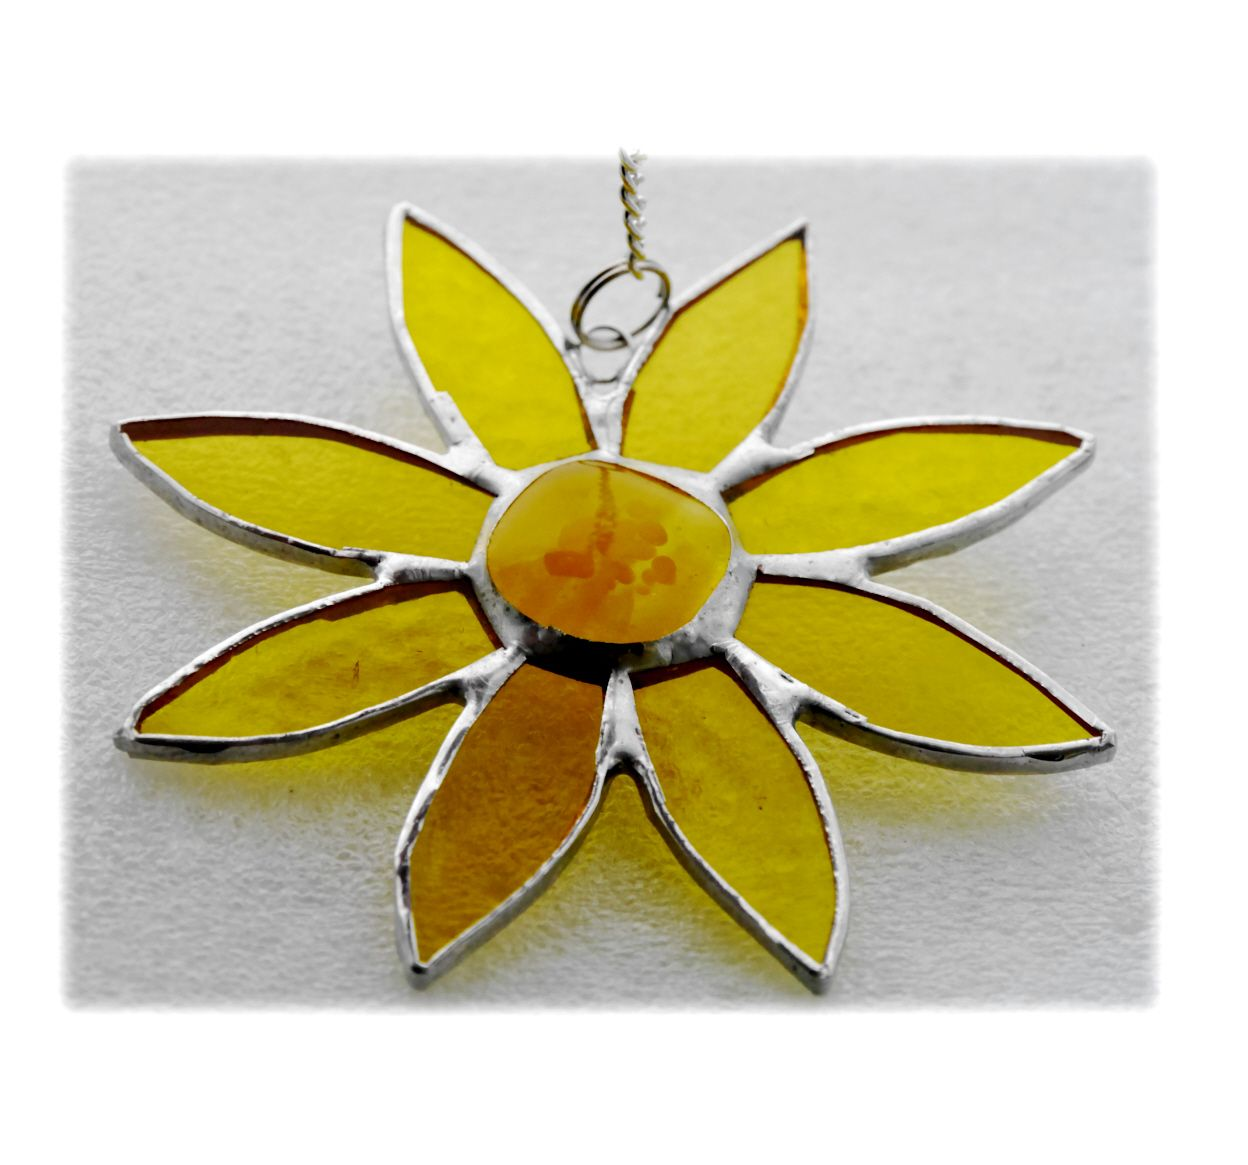 YELLOW Sunflower 045 #1812 FREE 10.00